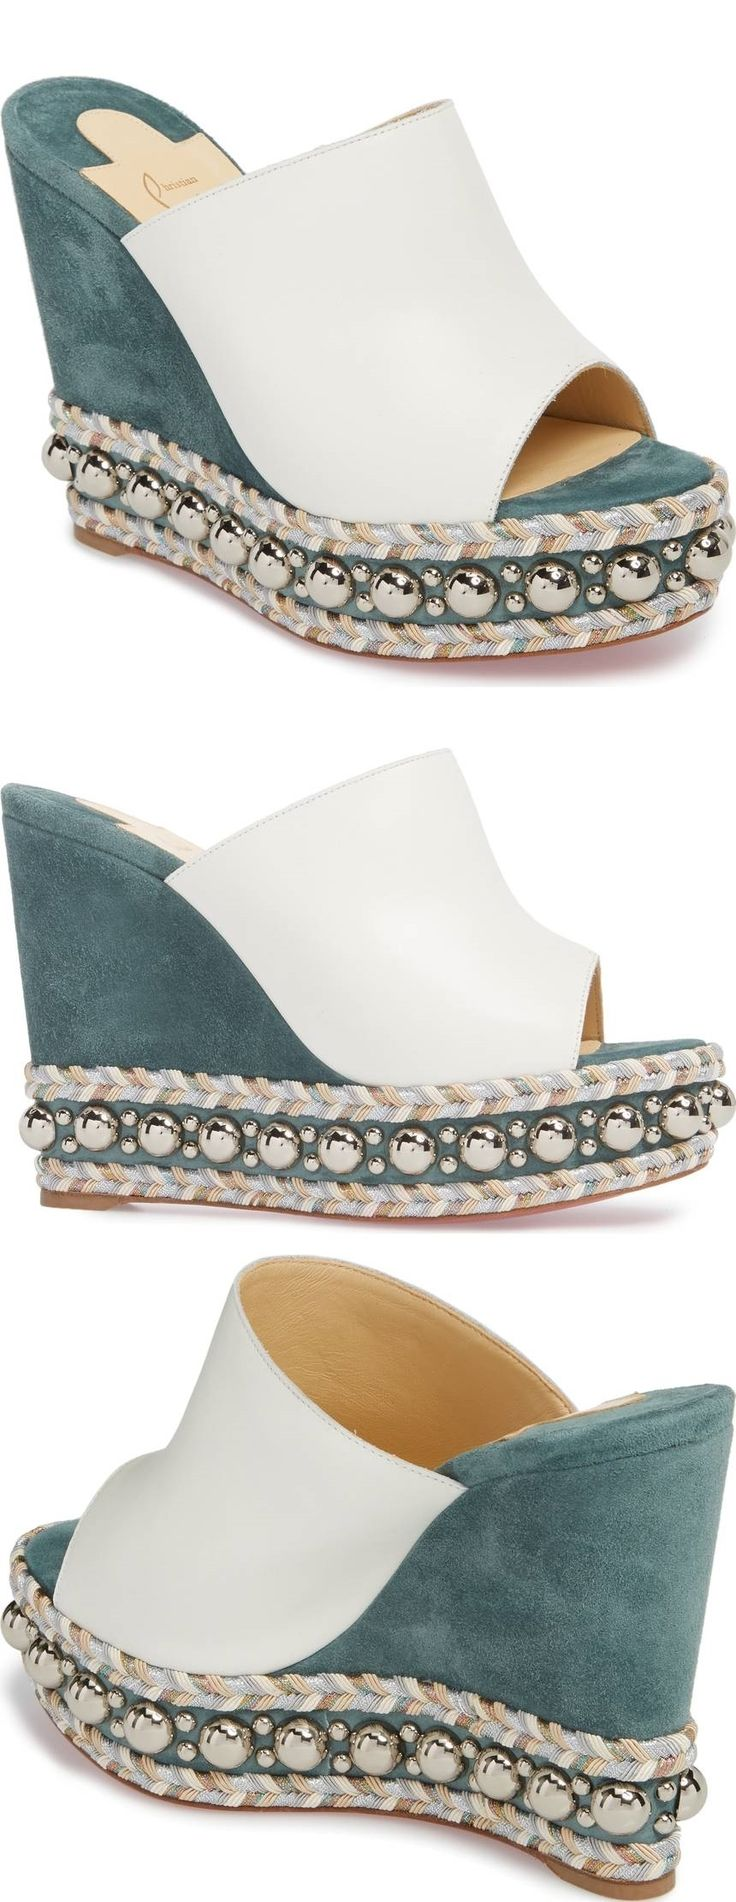 Shining studs and braided trim wrap the platform sole of a chic 'Janibasse' wedge mule paneled in rich leather and suede.